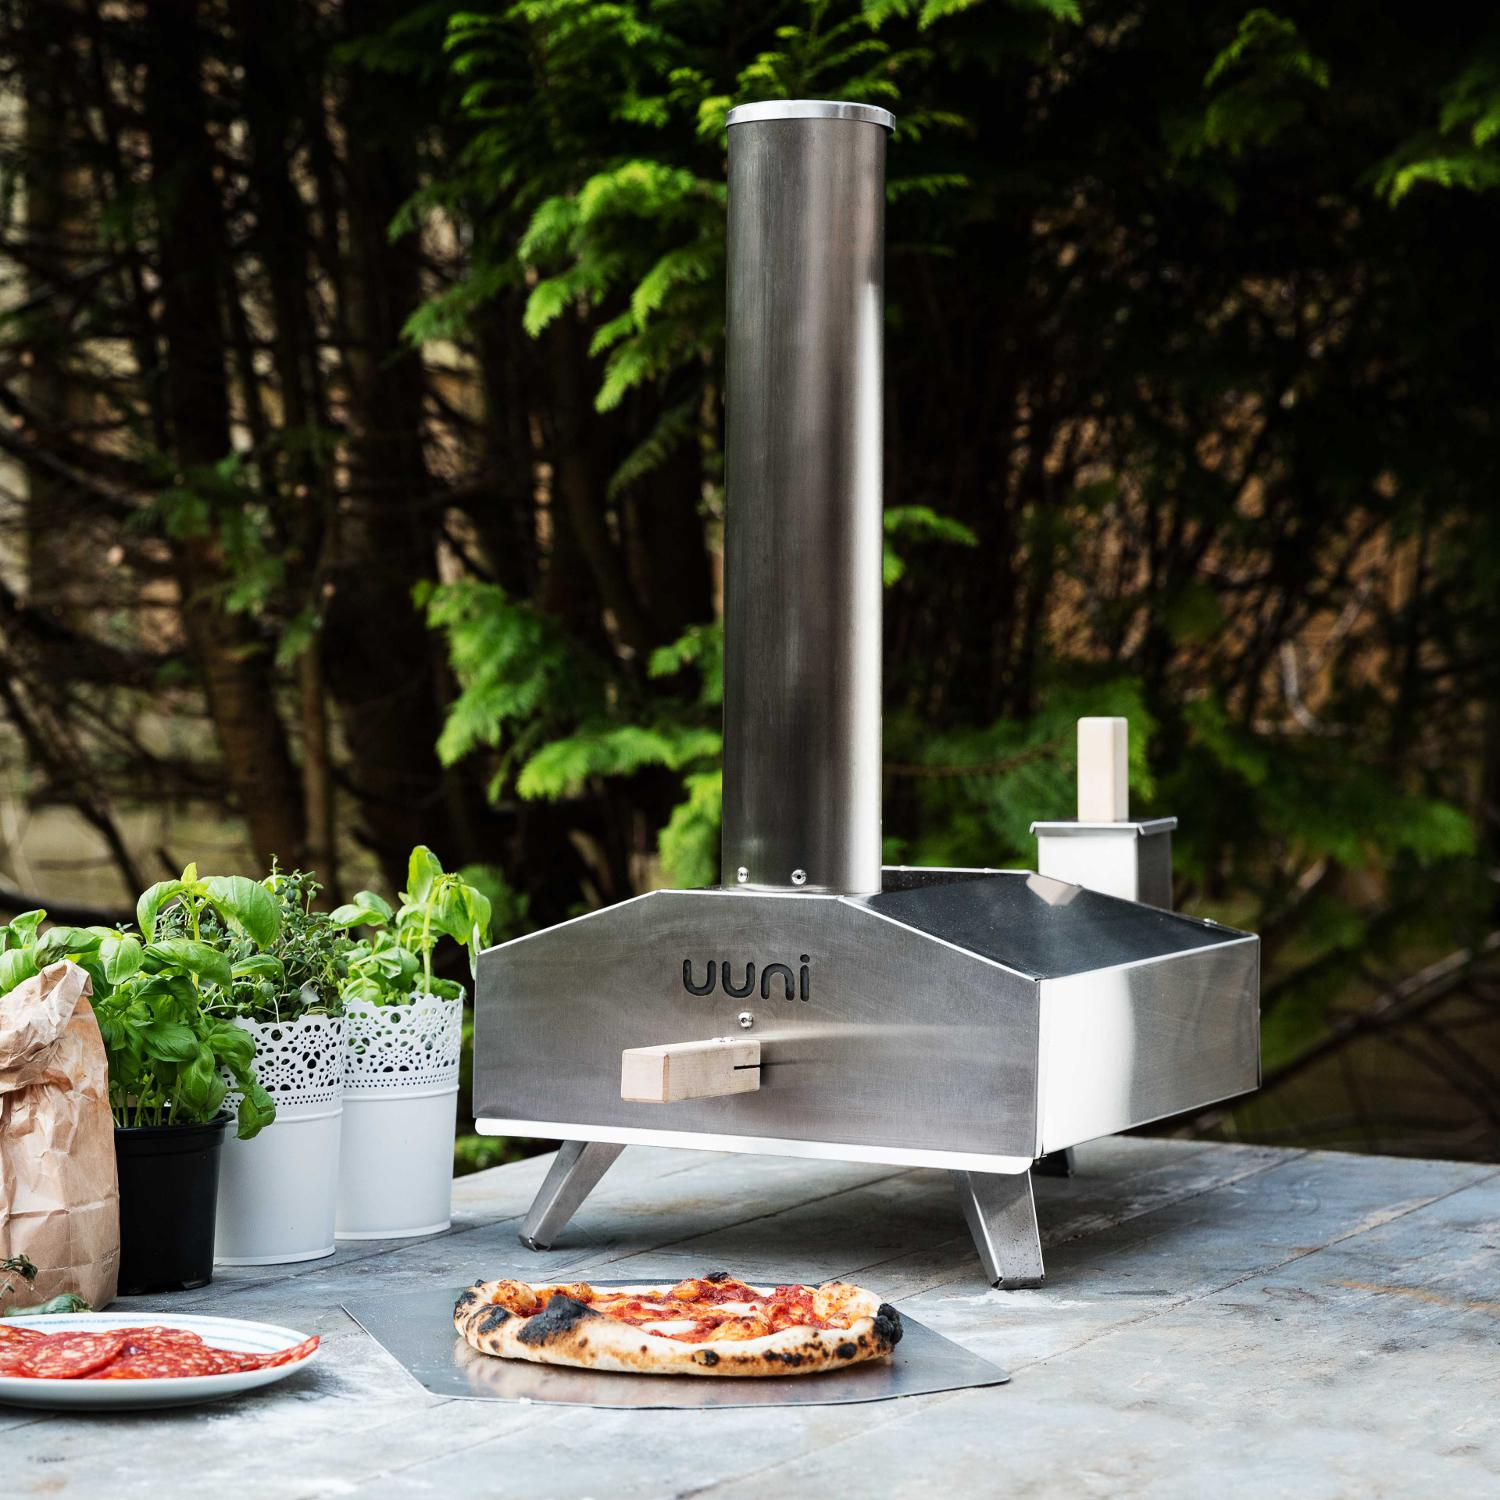 Ooni Uuni 3 Portable Outdoor Wood-Fired Pellet Pizza Oven - Stainless Steel - UUNI-3A